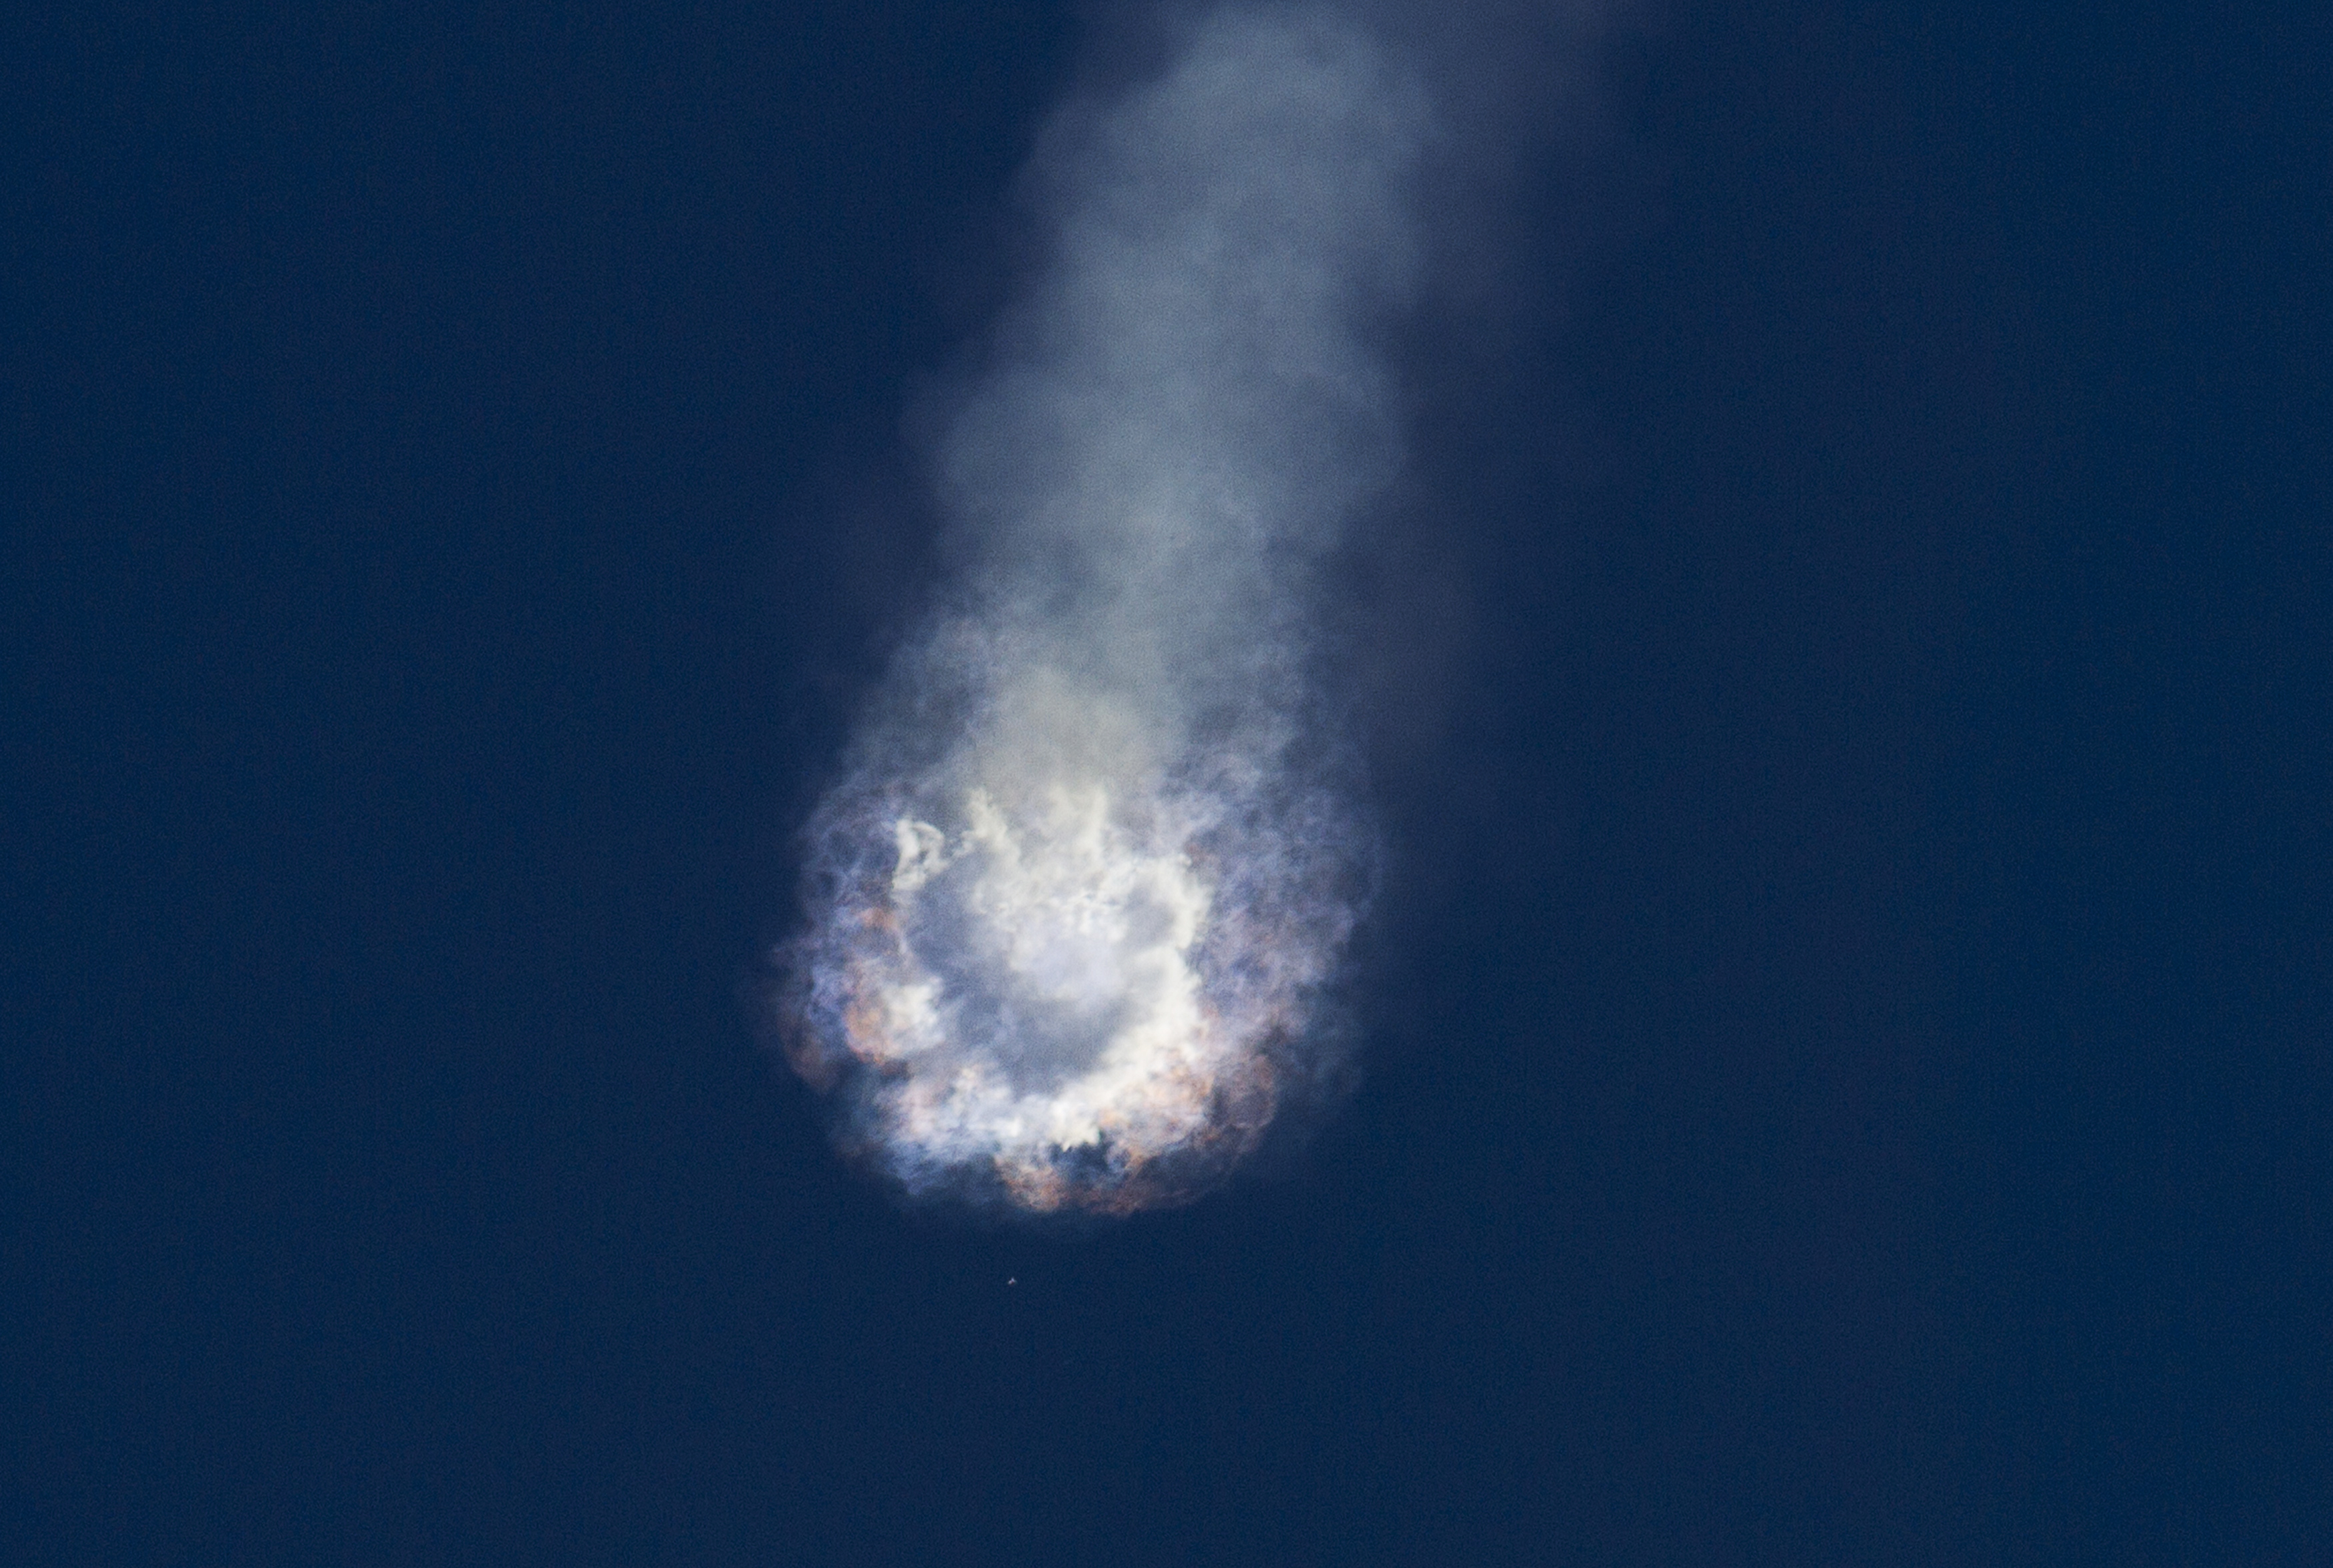 An unmanned SpaceX Falcon 9 rocket explodes after liftoff from Cape Canaveral